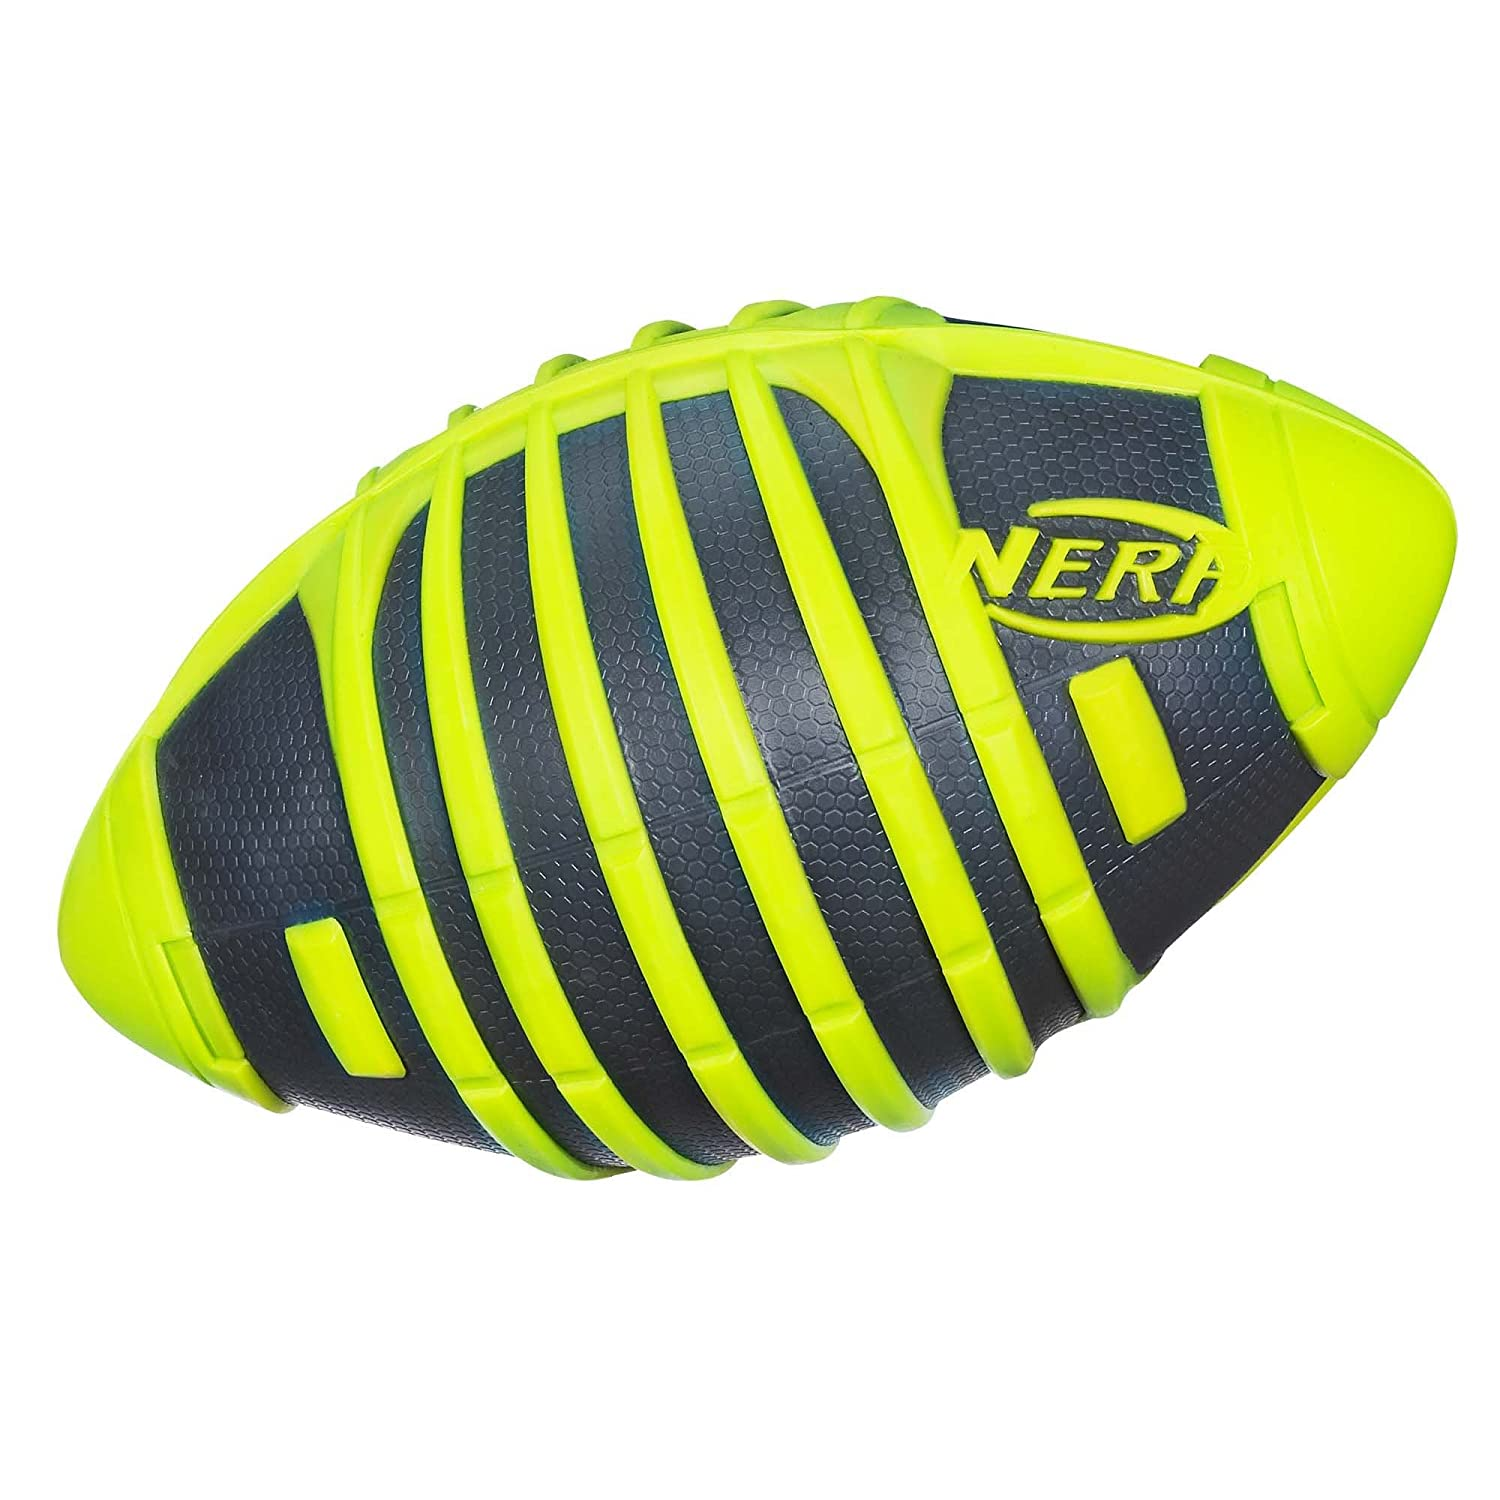 Nerf Fire vision Football : Target